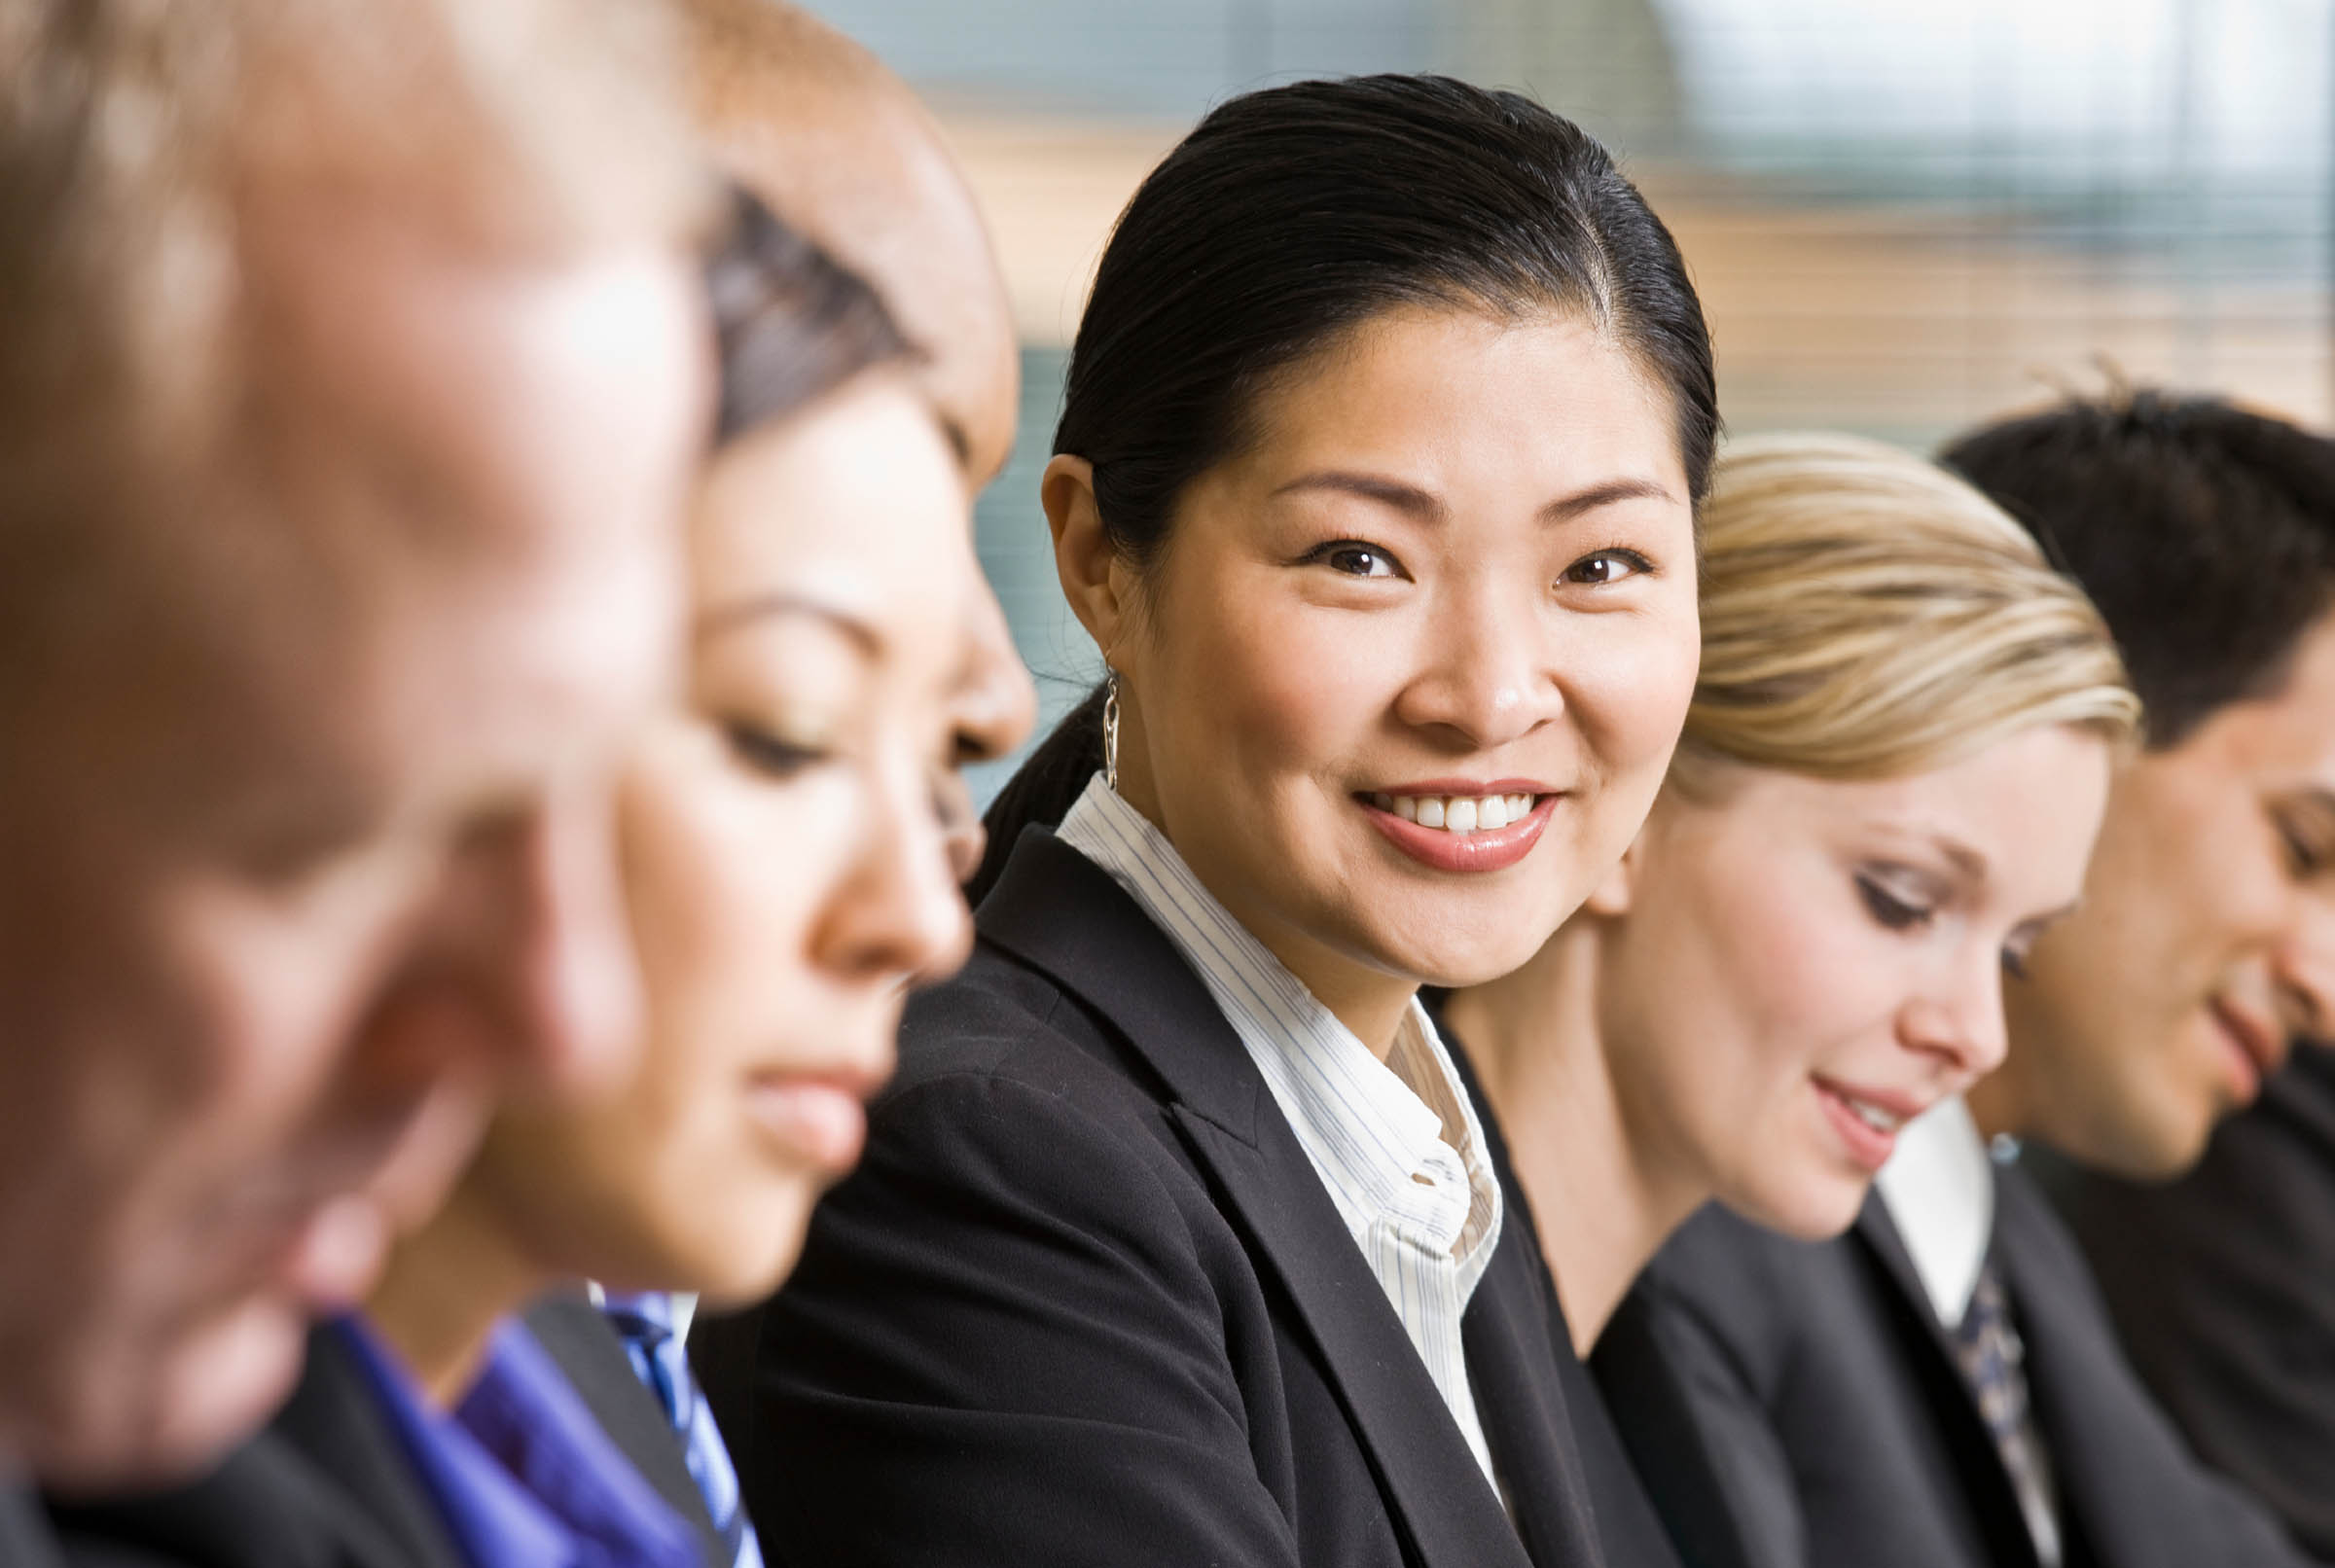 success story portfolio for carr workplaces executive, asian woman, smiling, confident, for carr workplaces success story